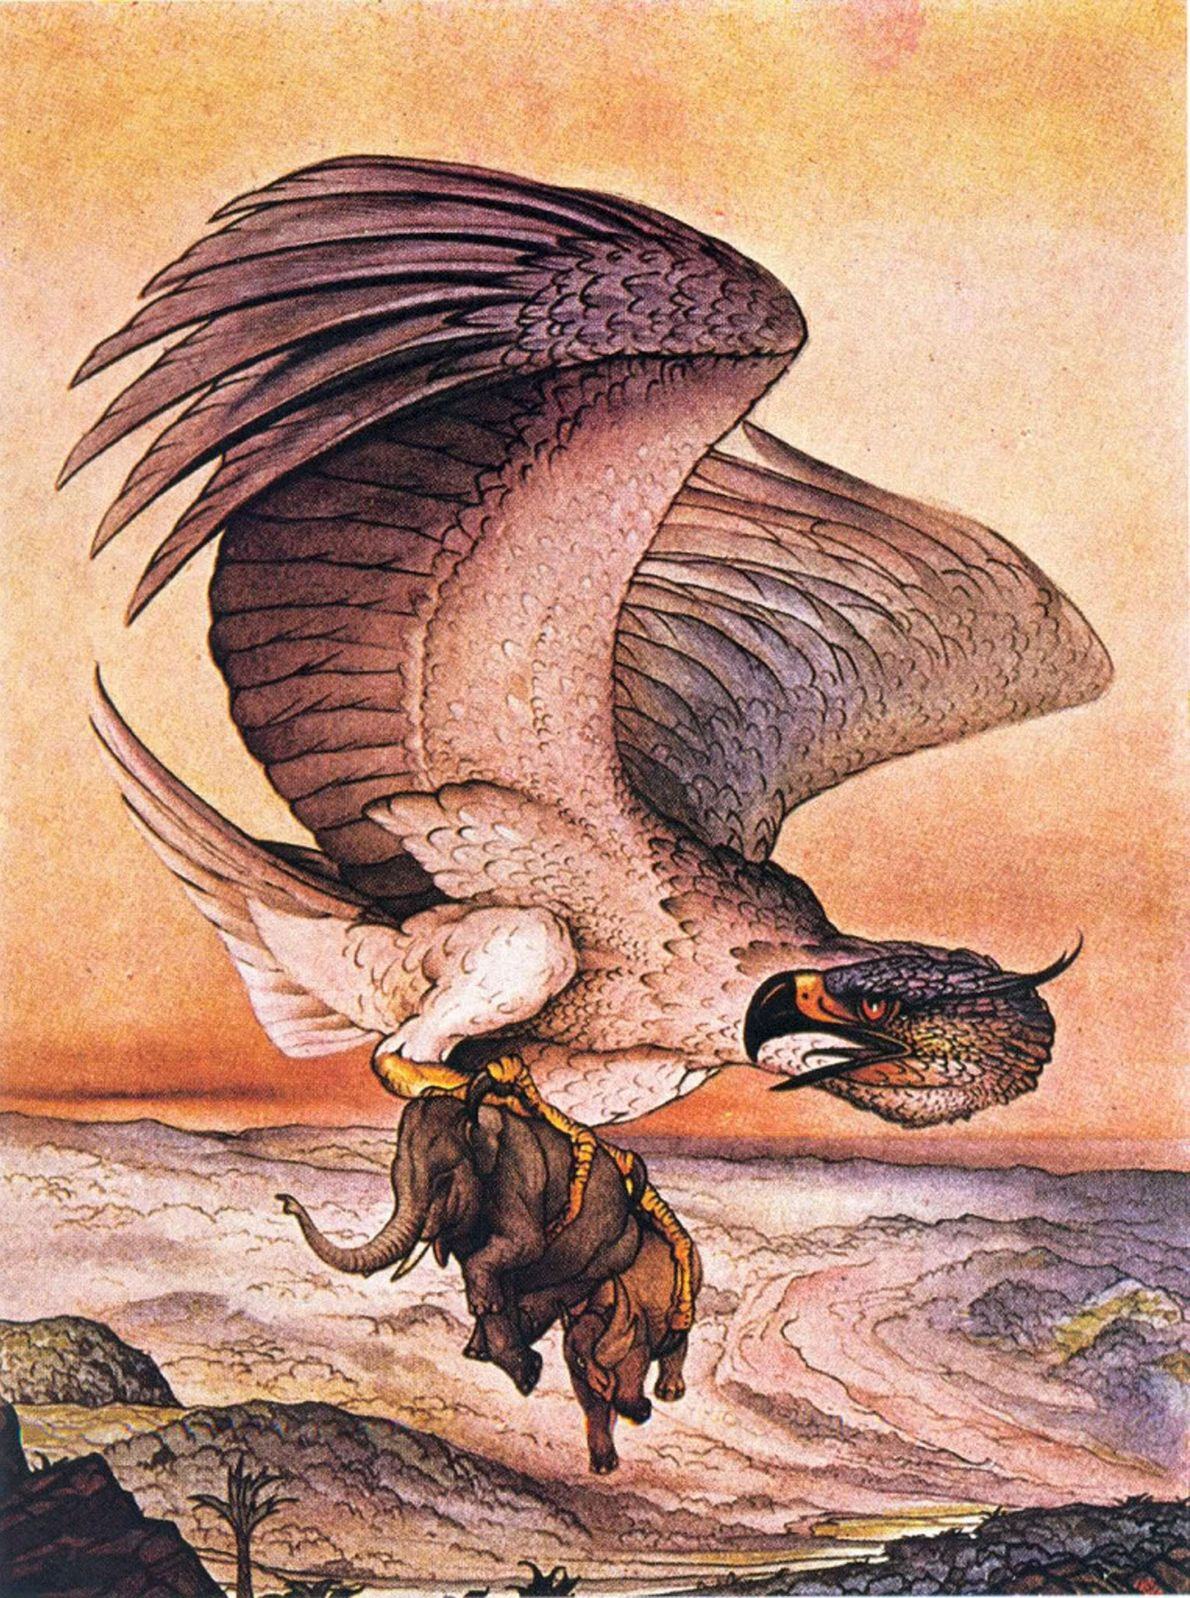 In the Arabic legend of Sinbad the Sailor, a bird called the Roc plucks an elephant ...